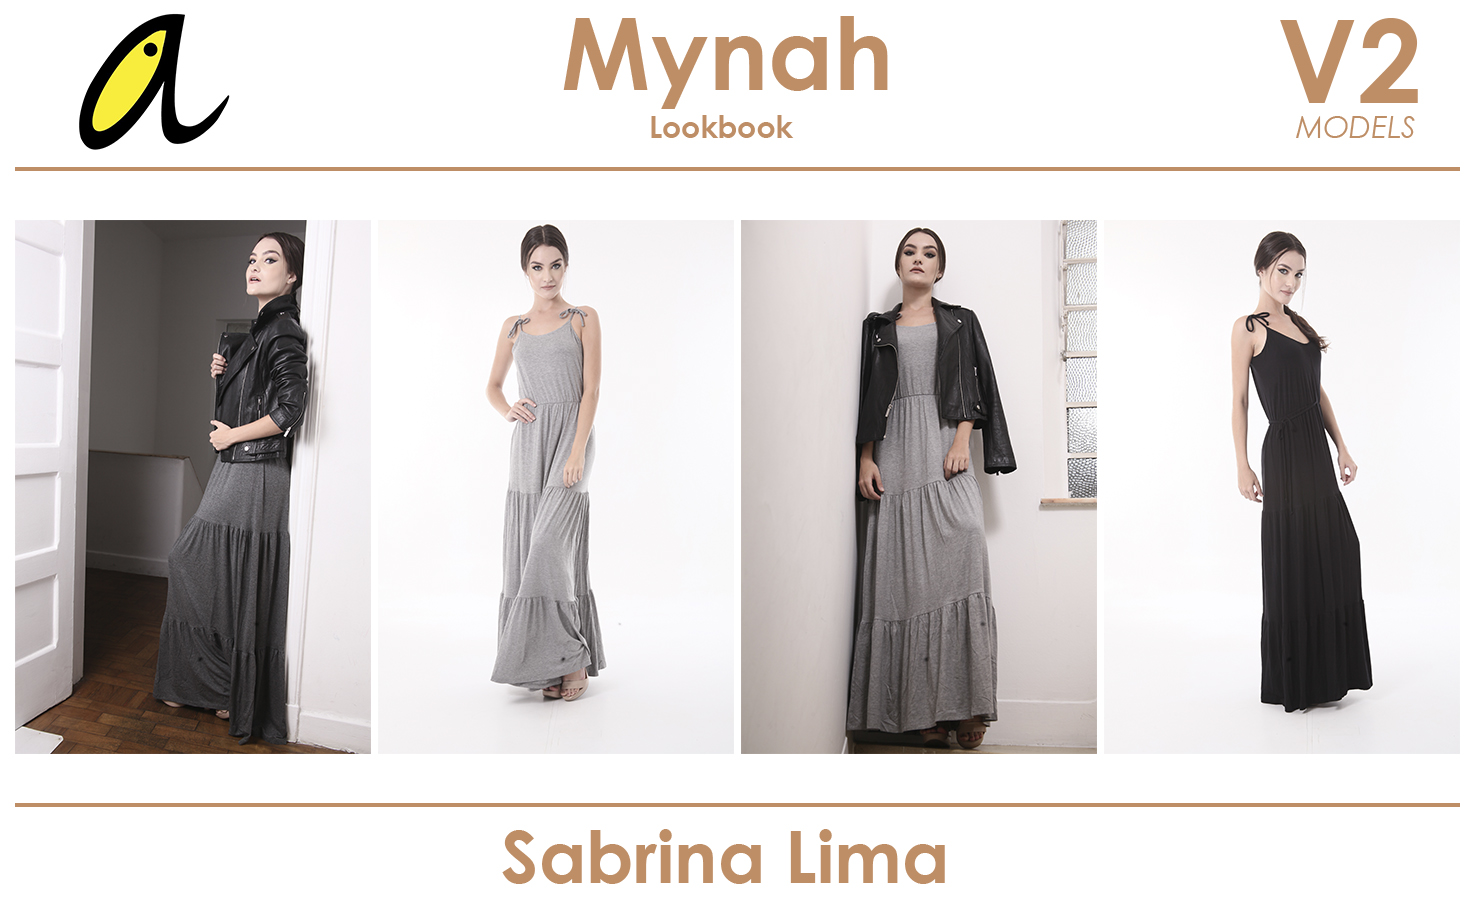 Lookbook Mynah - Mod...